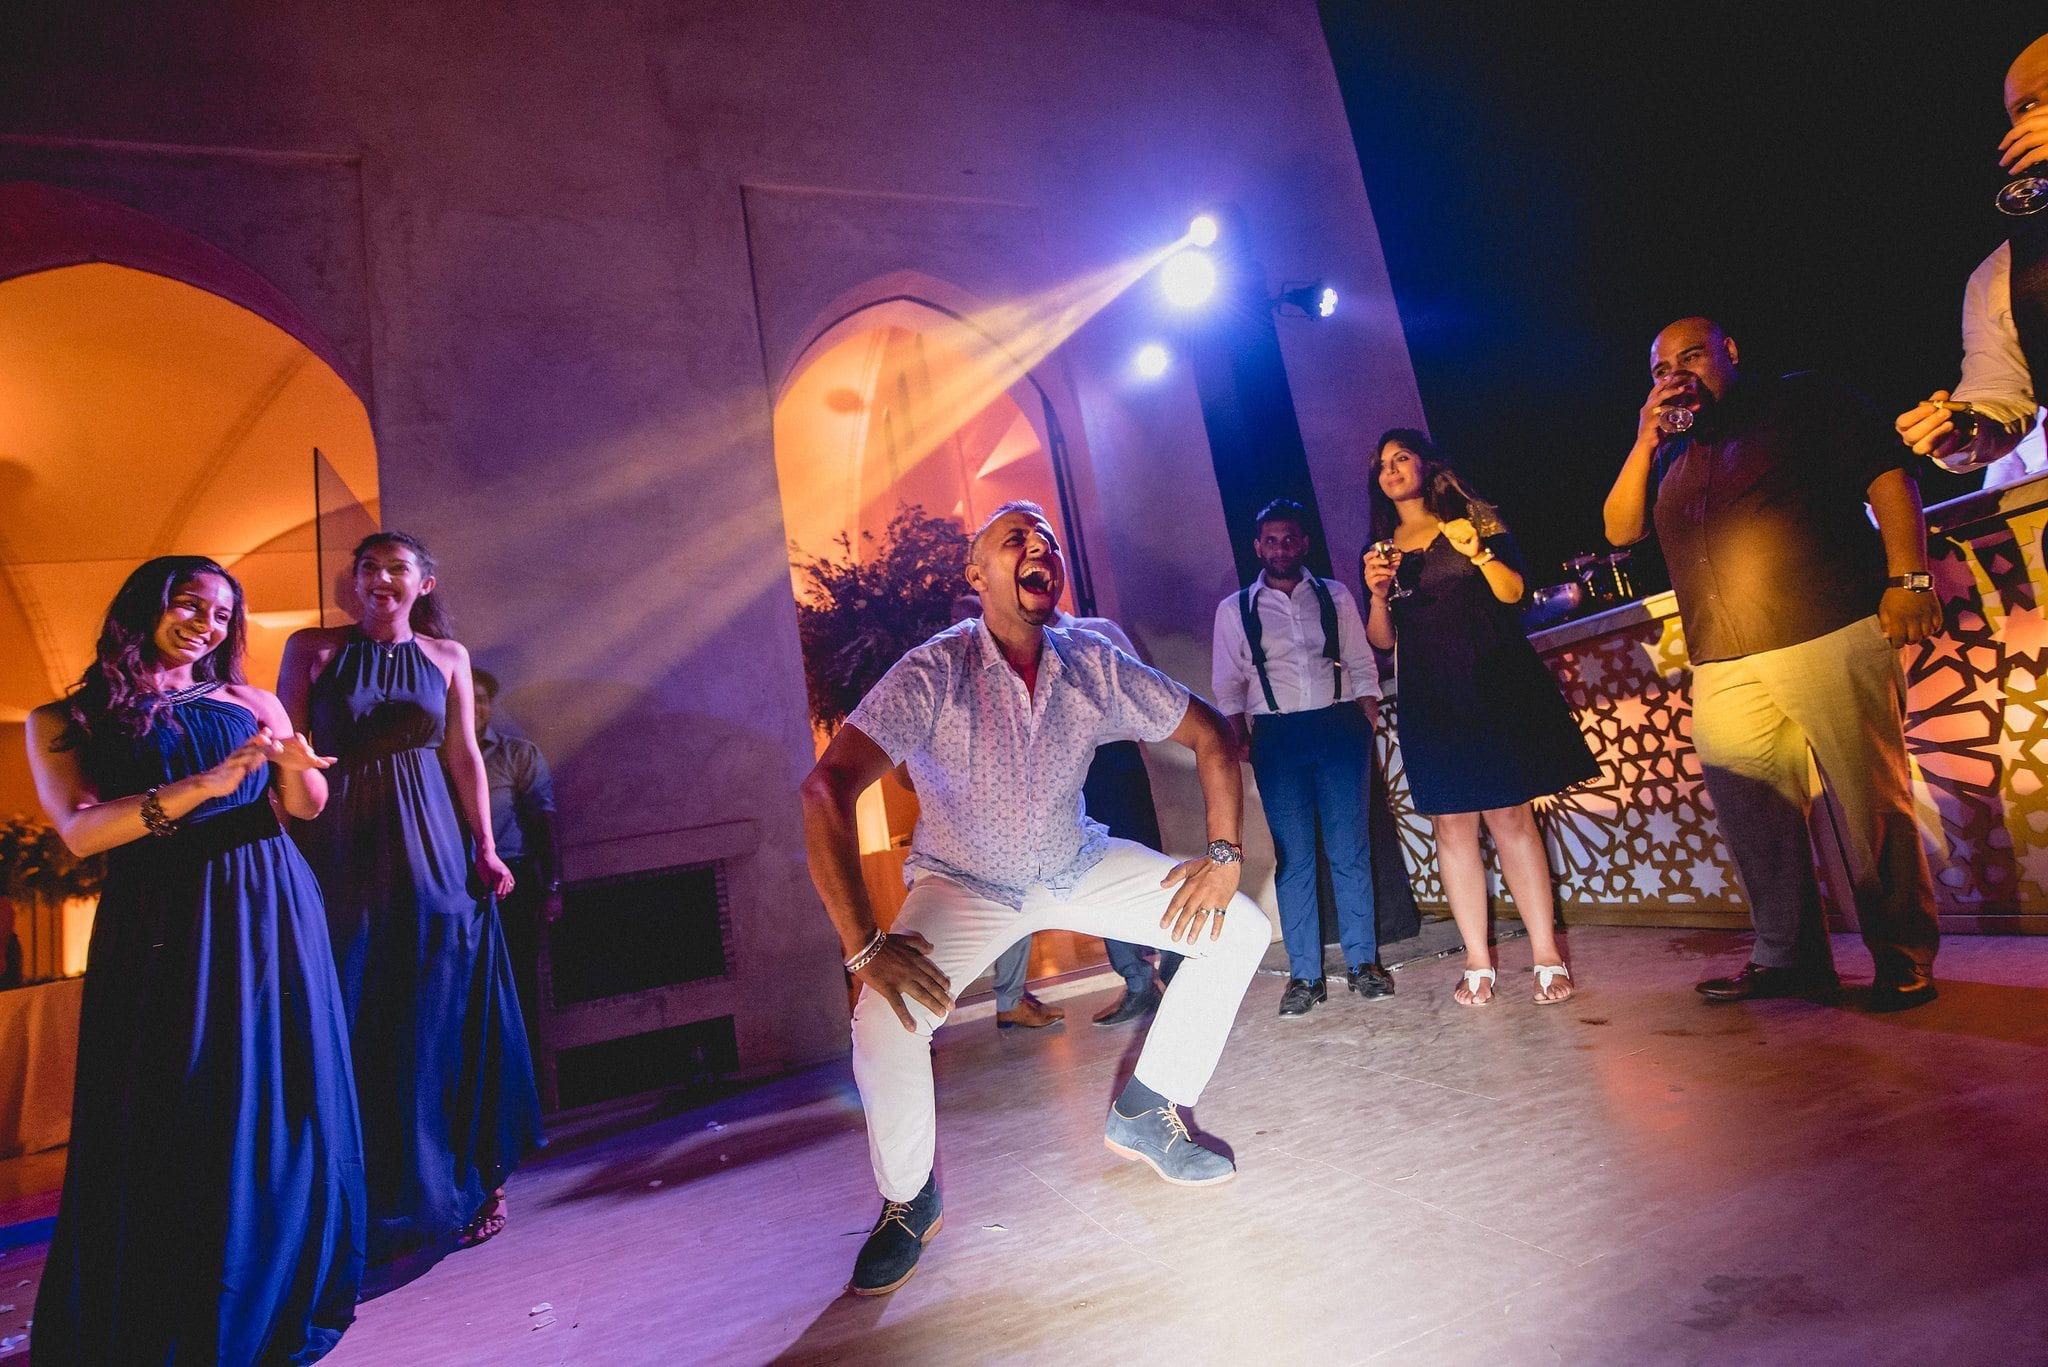 A male wedding guest shows off some dance moves